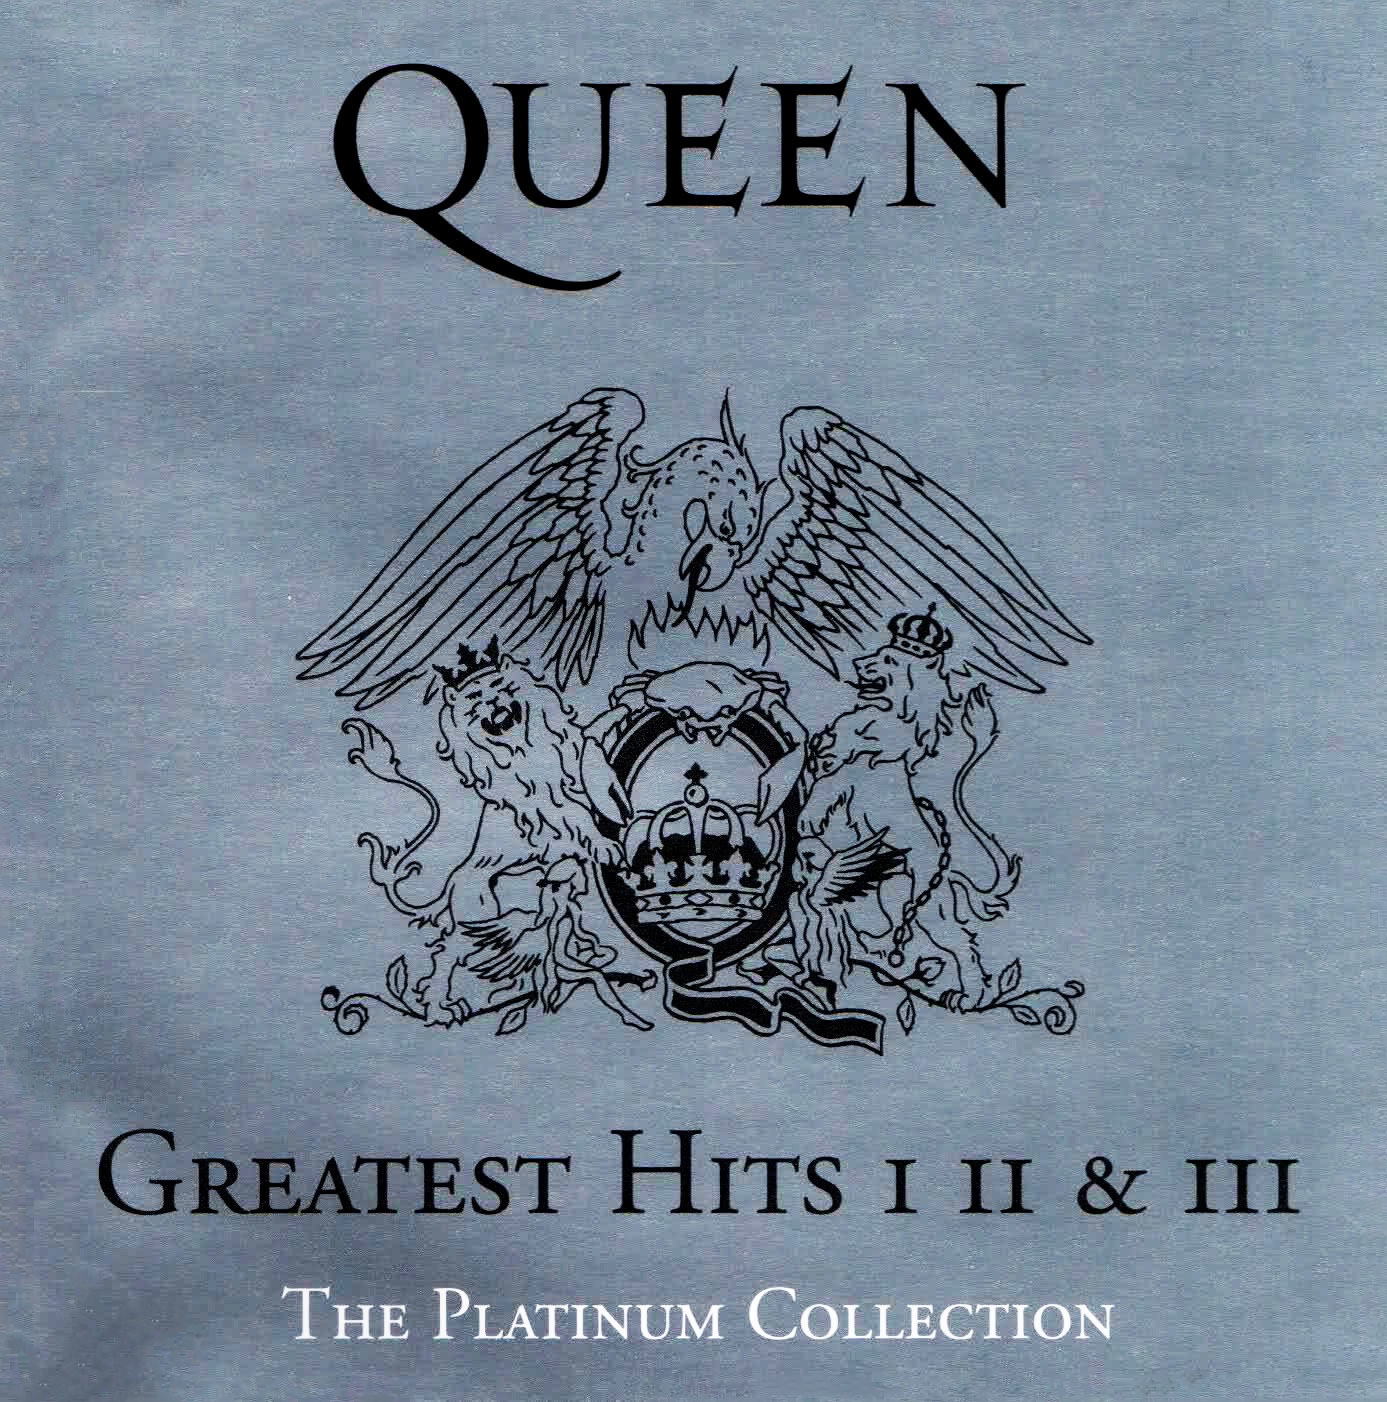 queen greatest hits 3 - photo #10